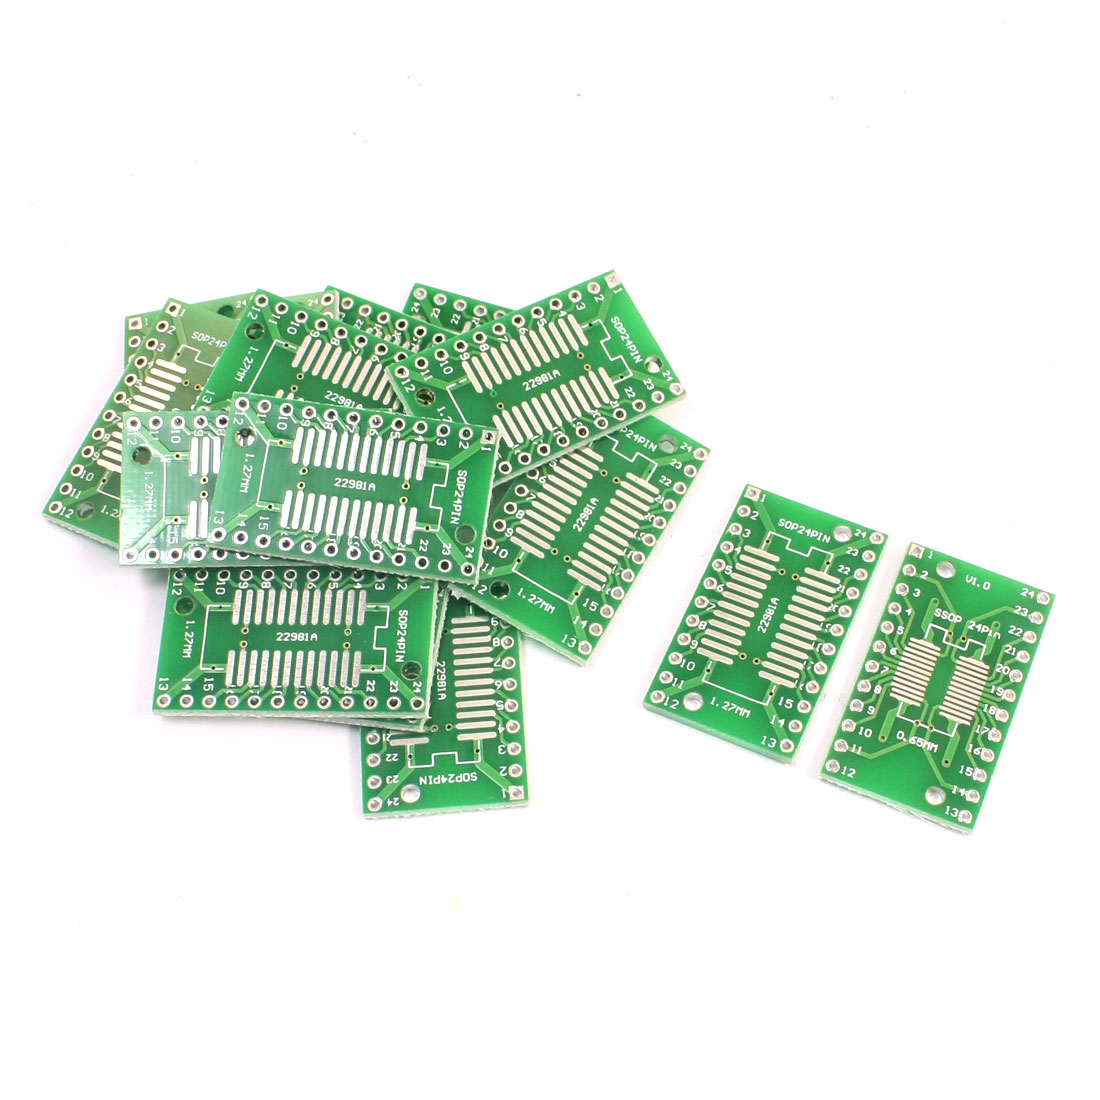 15Pcs SMD SOP24 SSOP24 0.65mm 1.27mm to DIP24 24Pin 2.54mm IC PCB Adapter Converter Plate Board